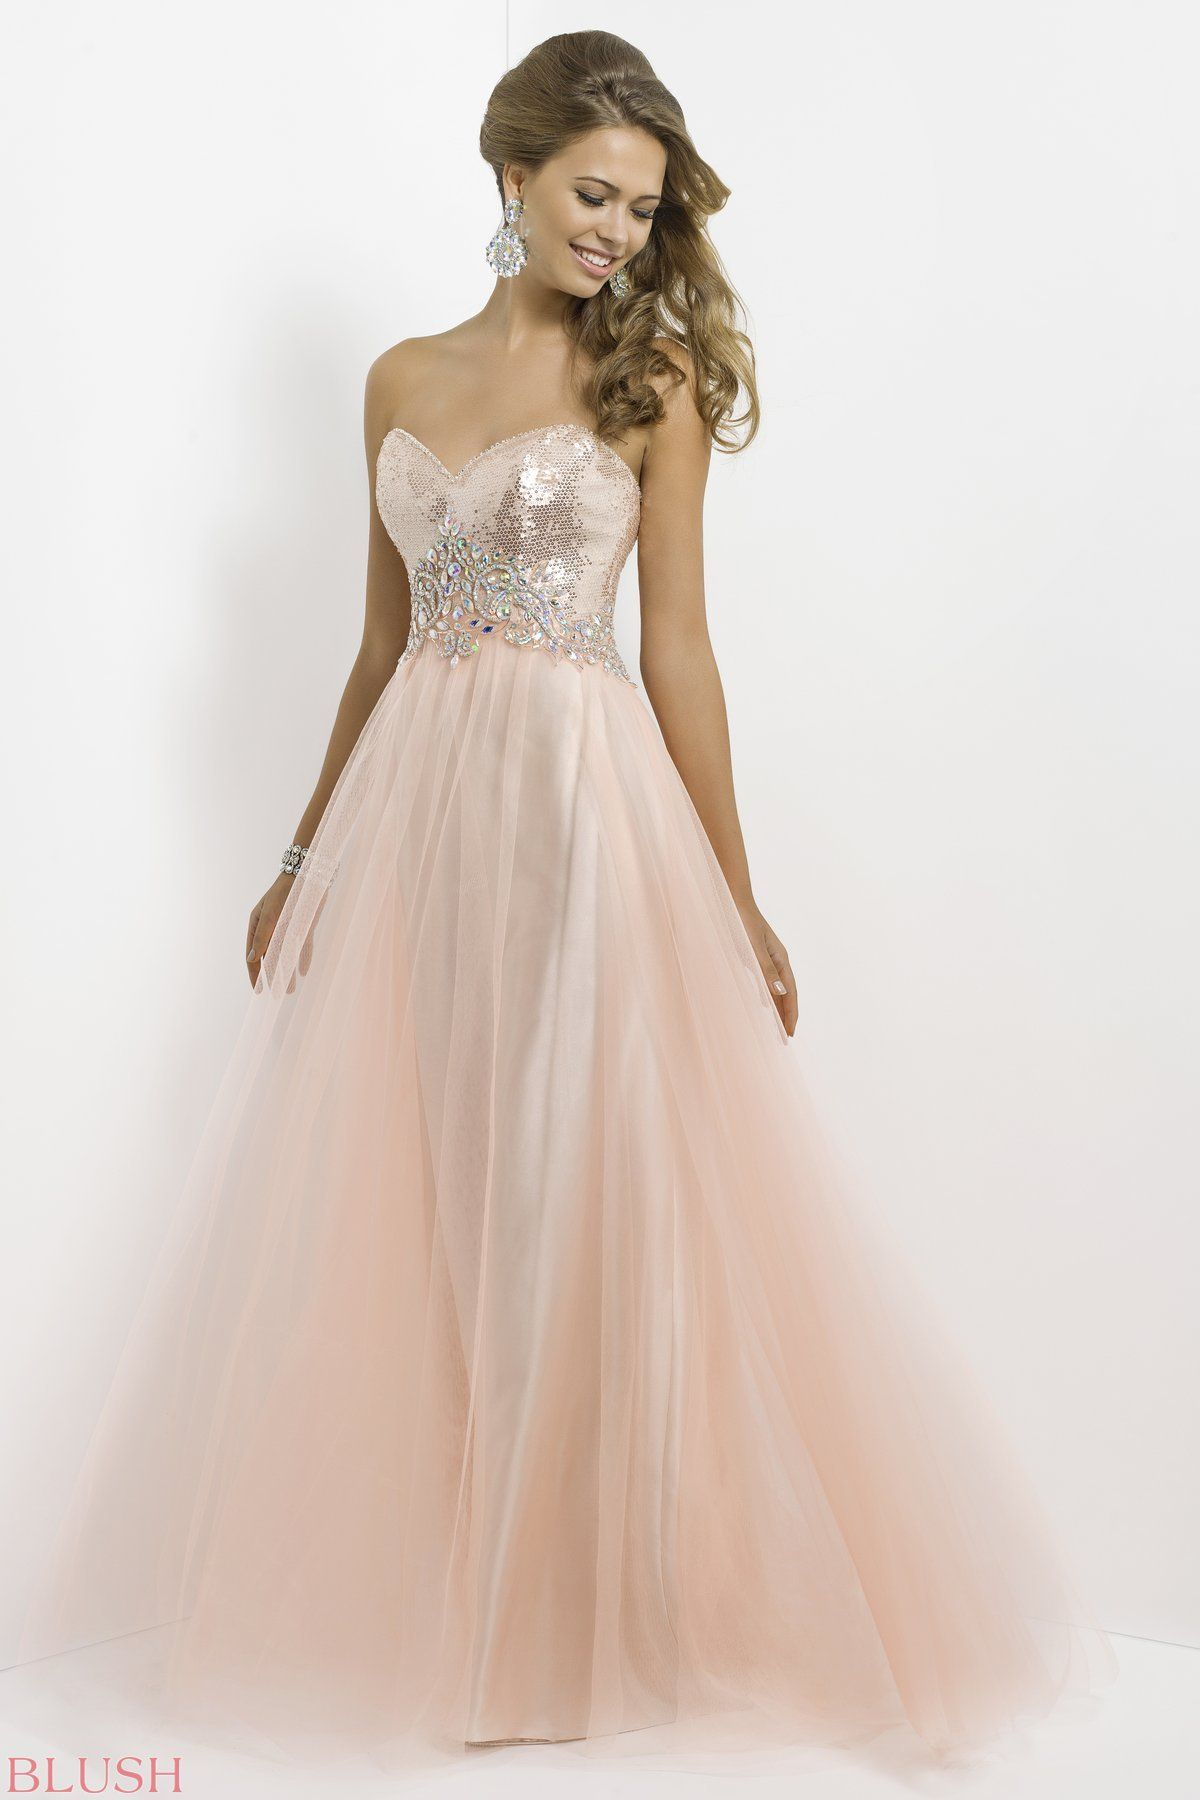 Blush prom dress season facebookthebridalconnection